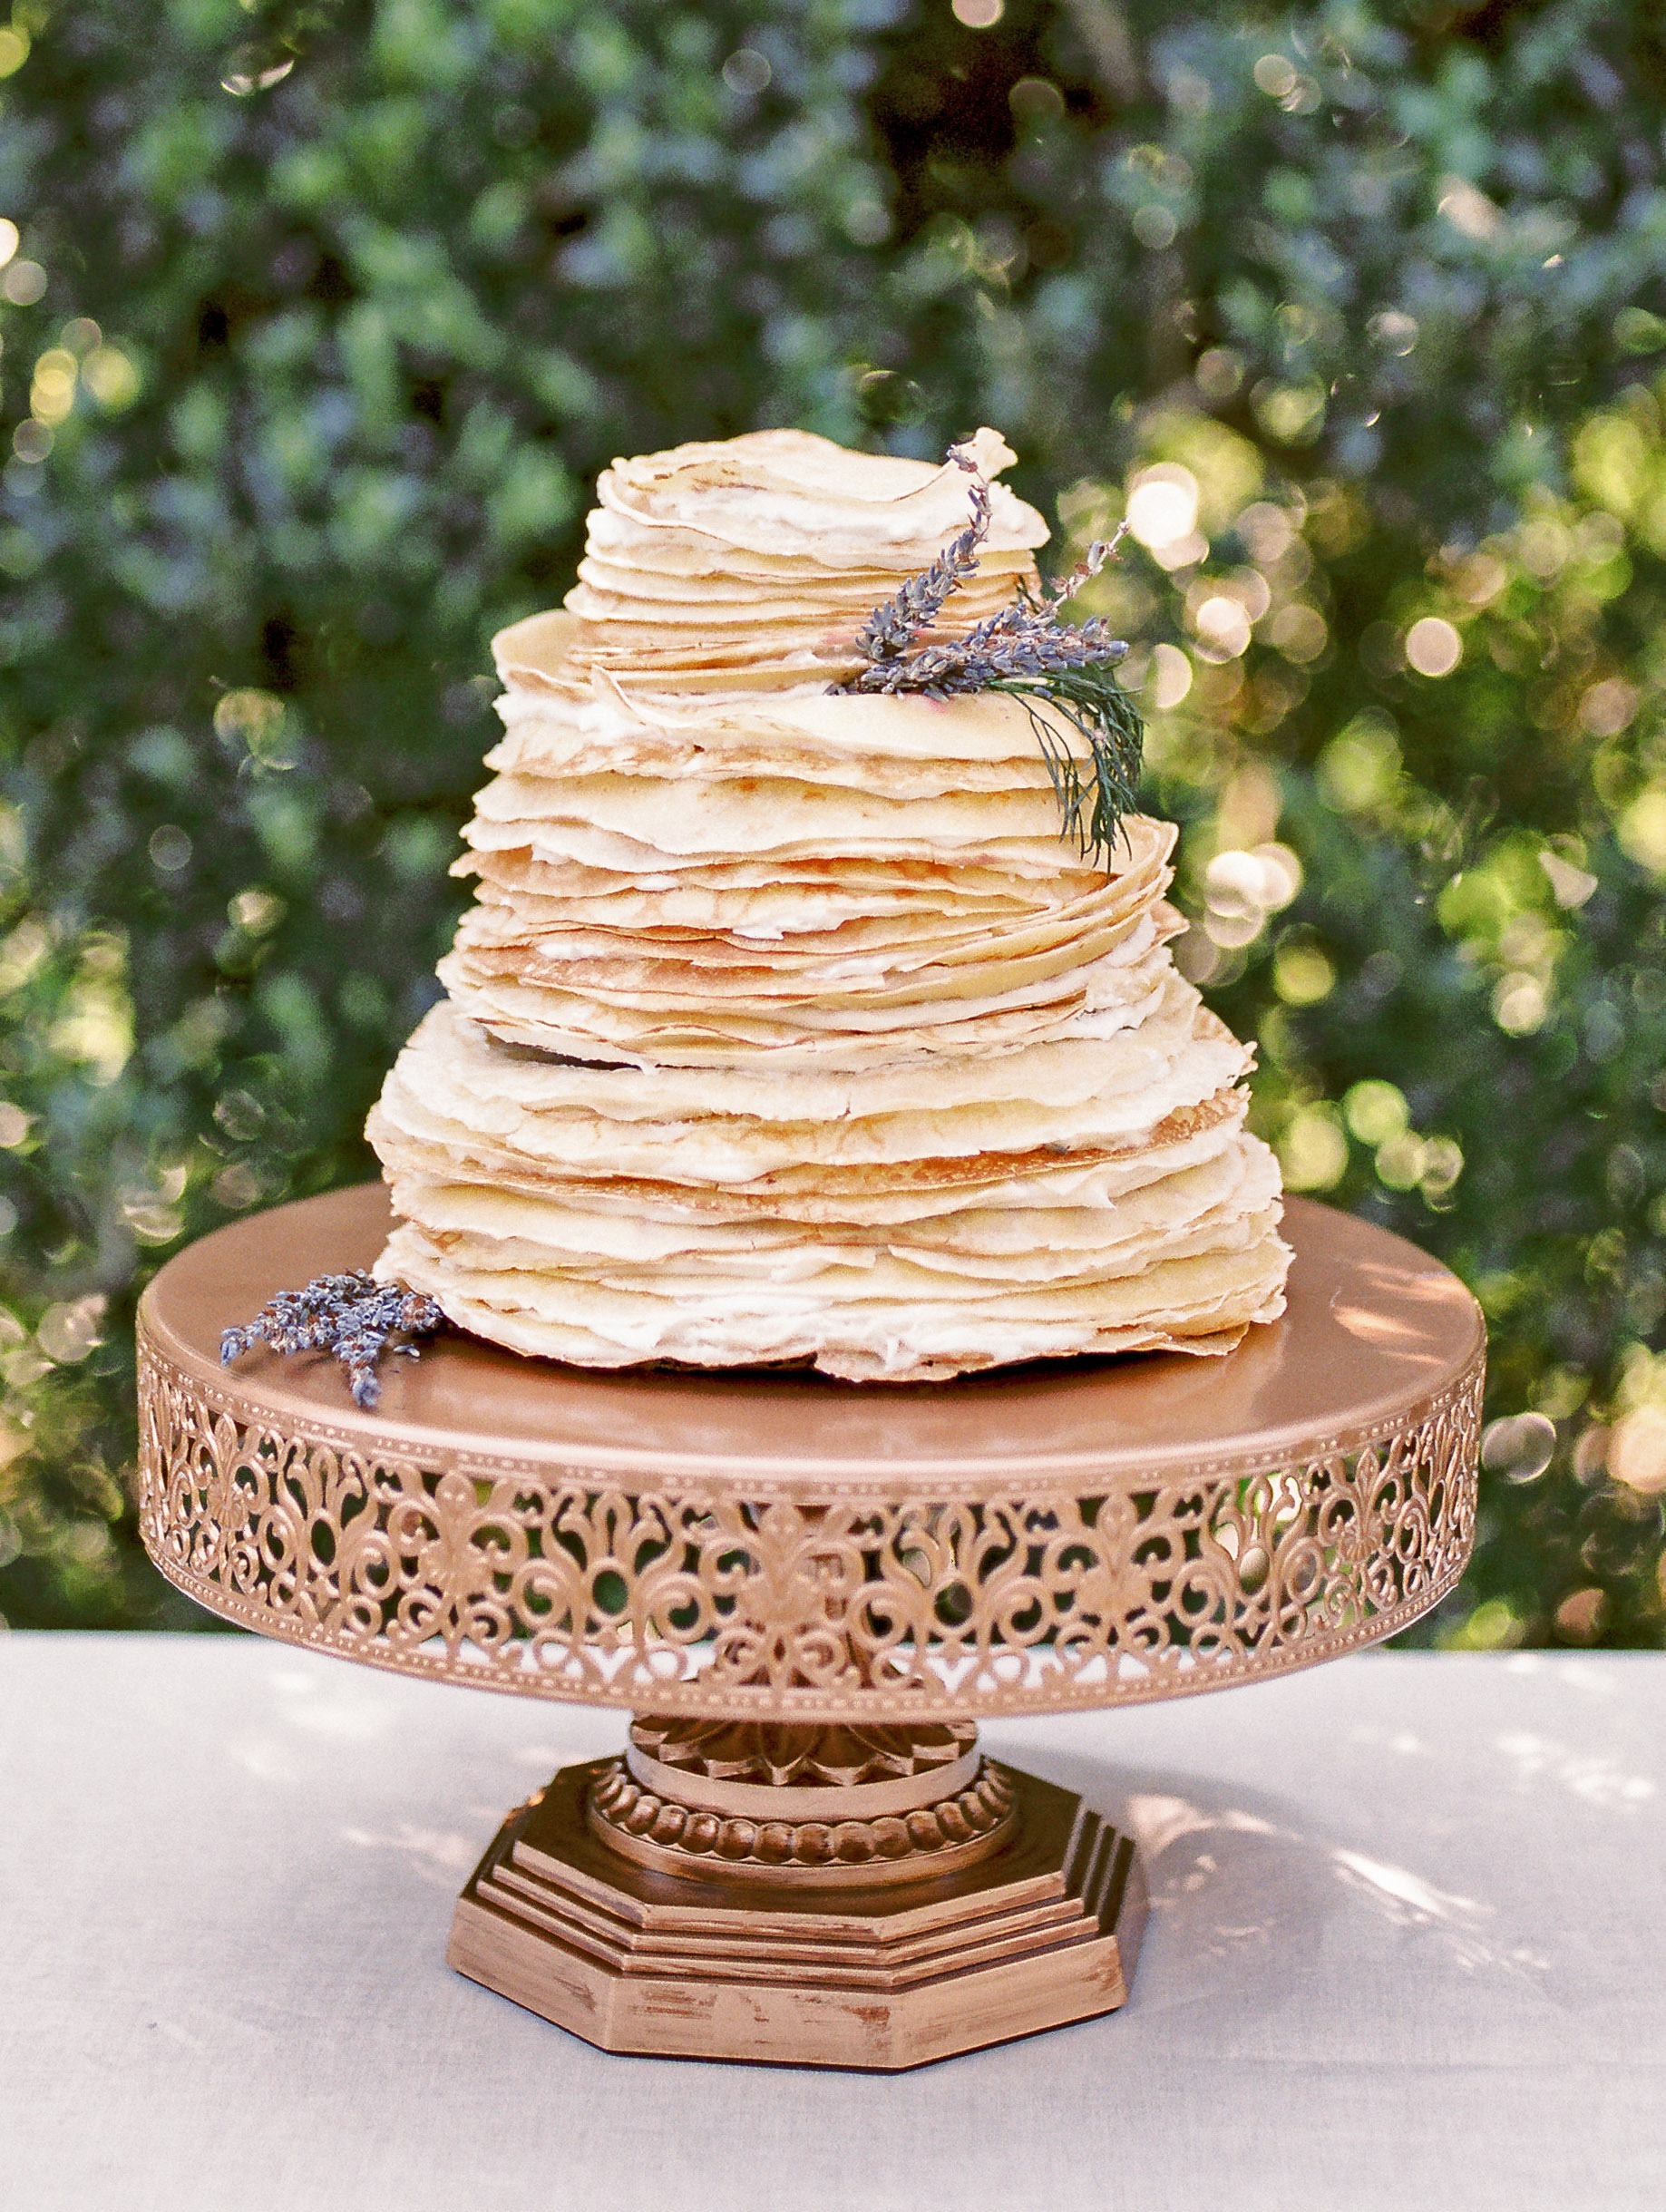 stack of crepes on cake tray